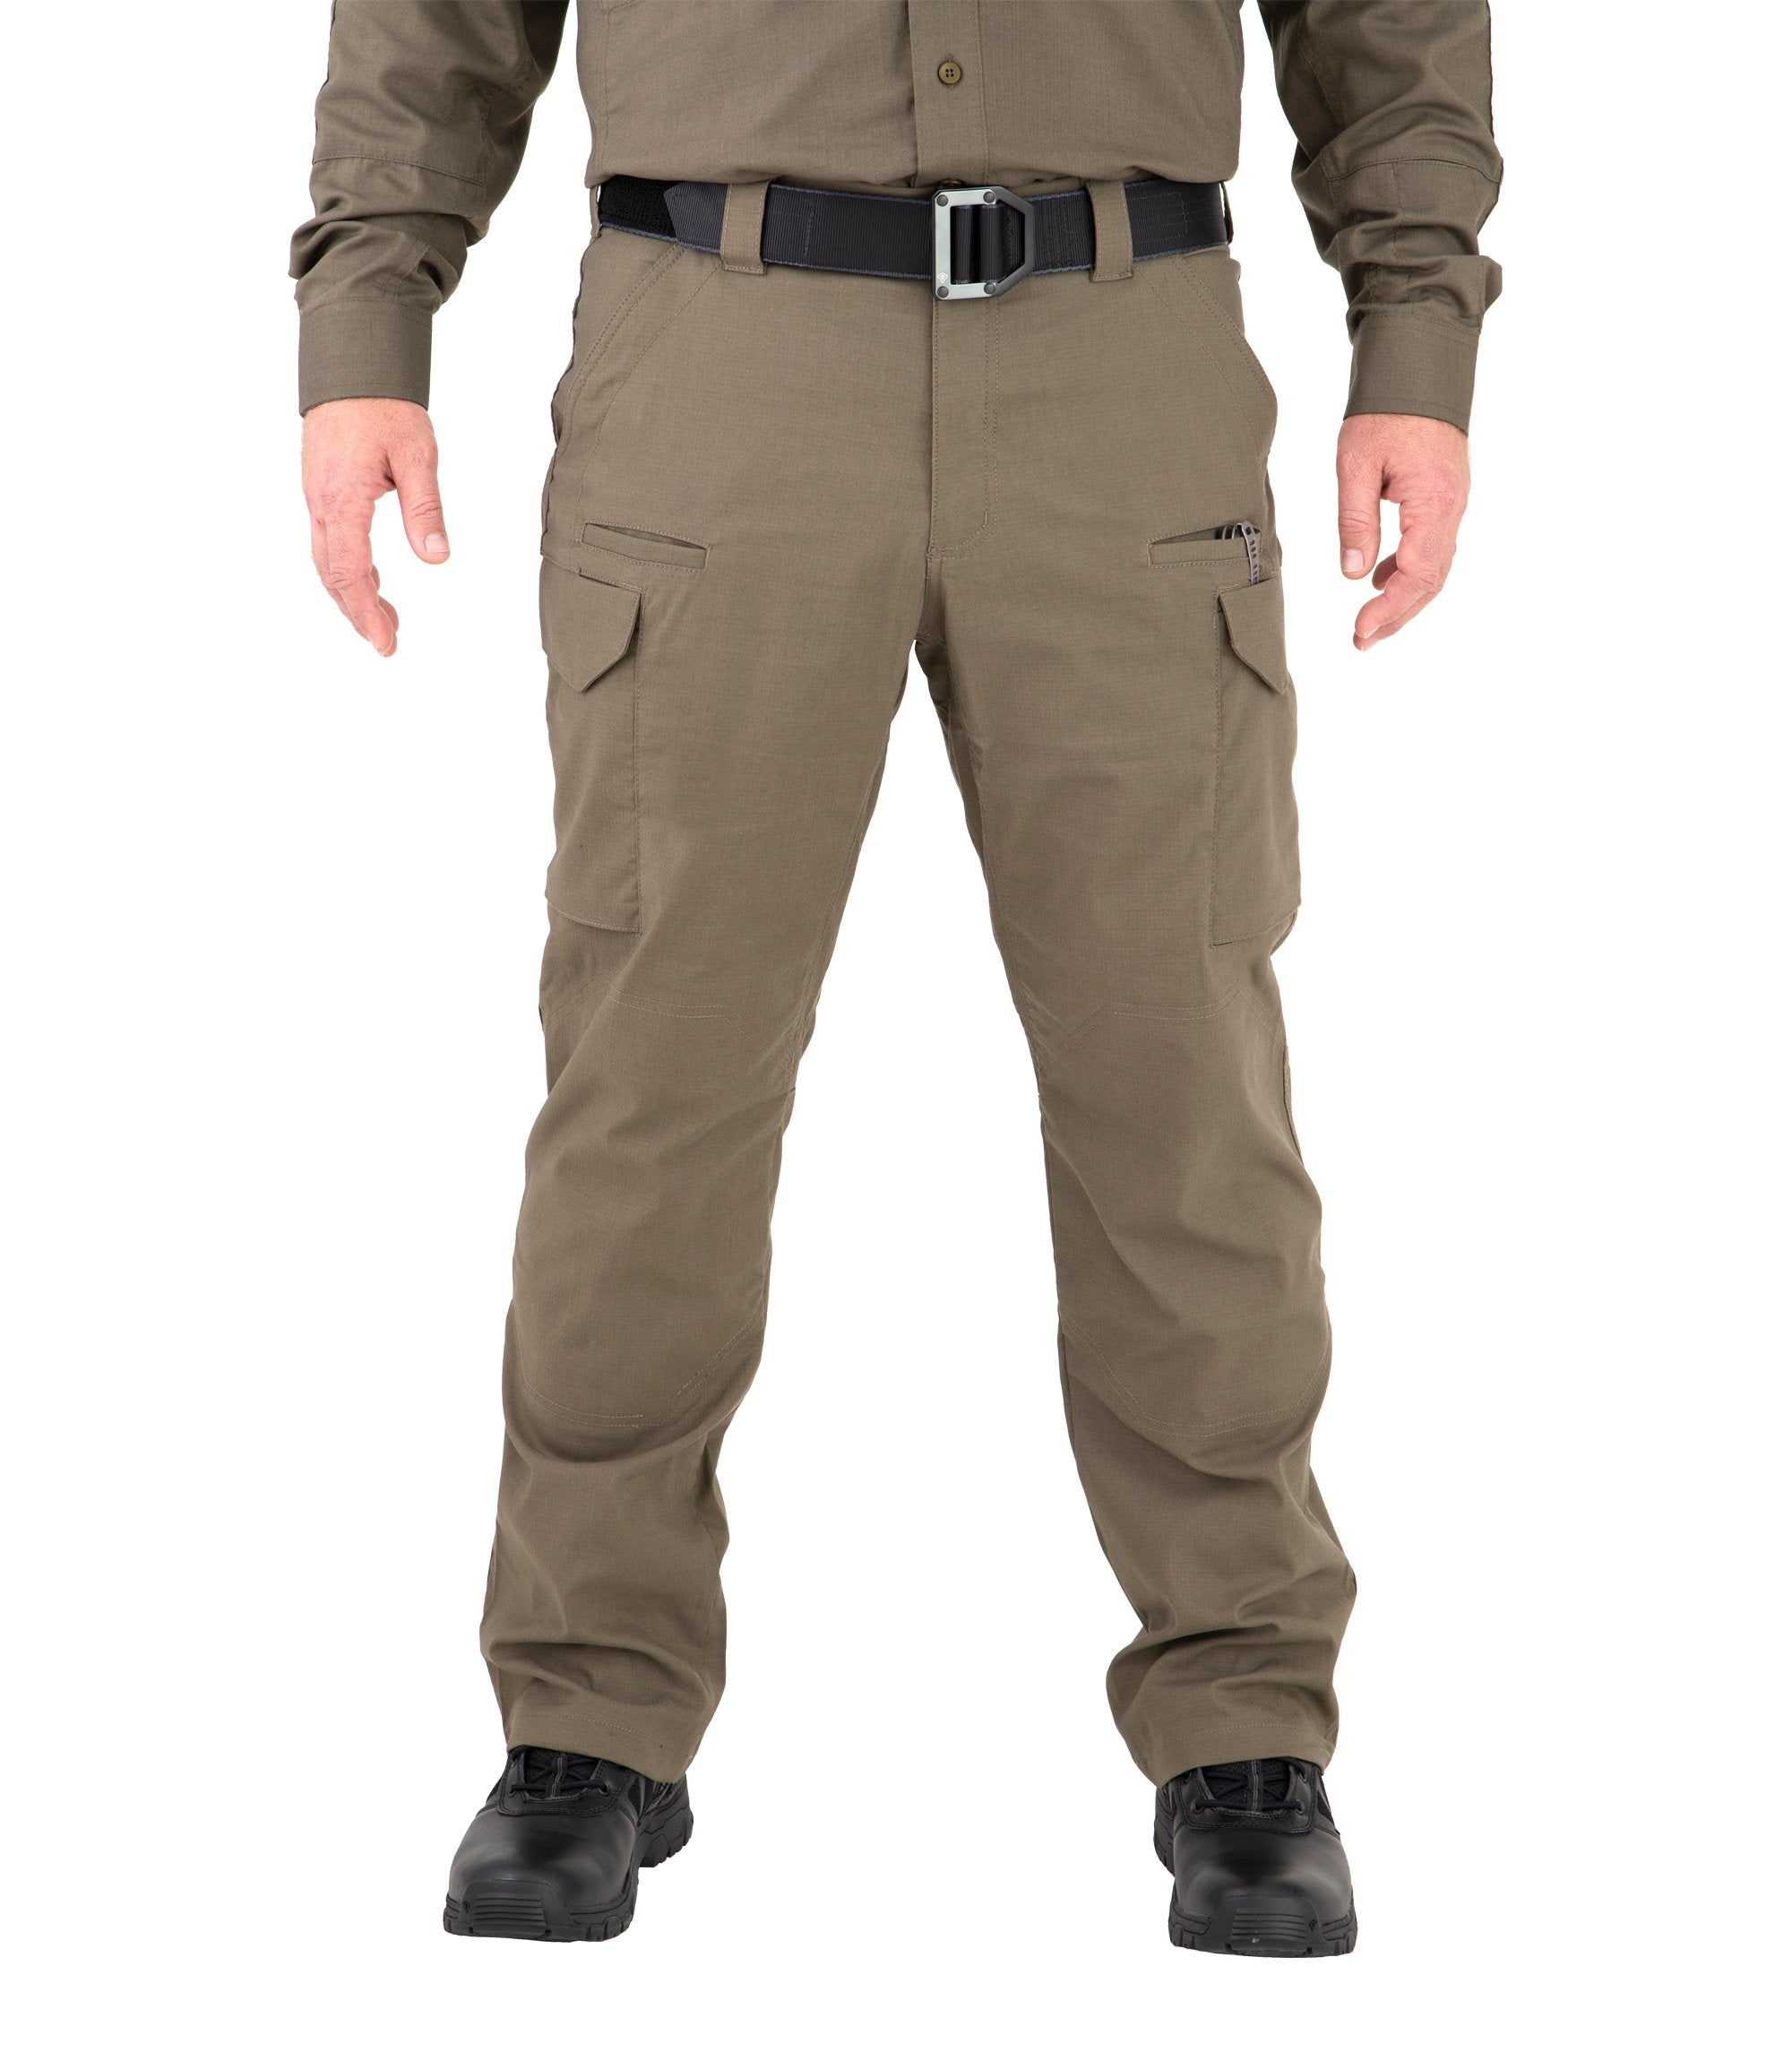 First Tactical V2 Tactical Pants - Mens - Wolf Grey & Ranger Green - red-diamond-uniform-police-supply